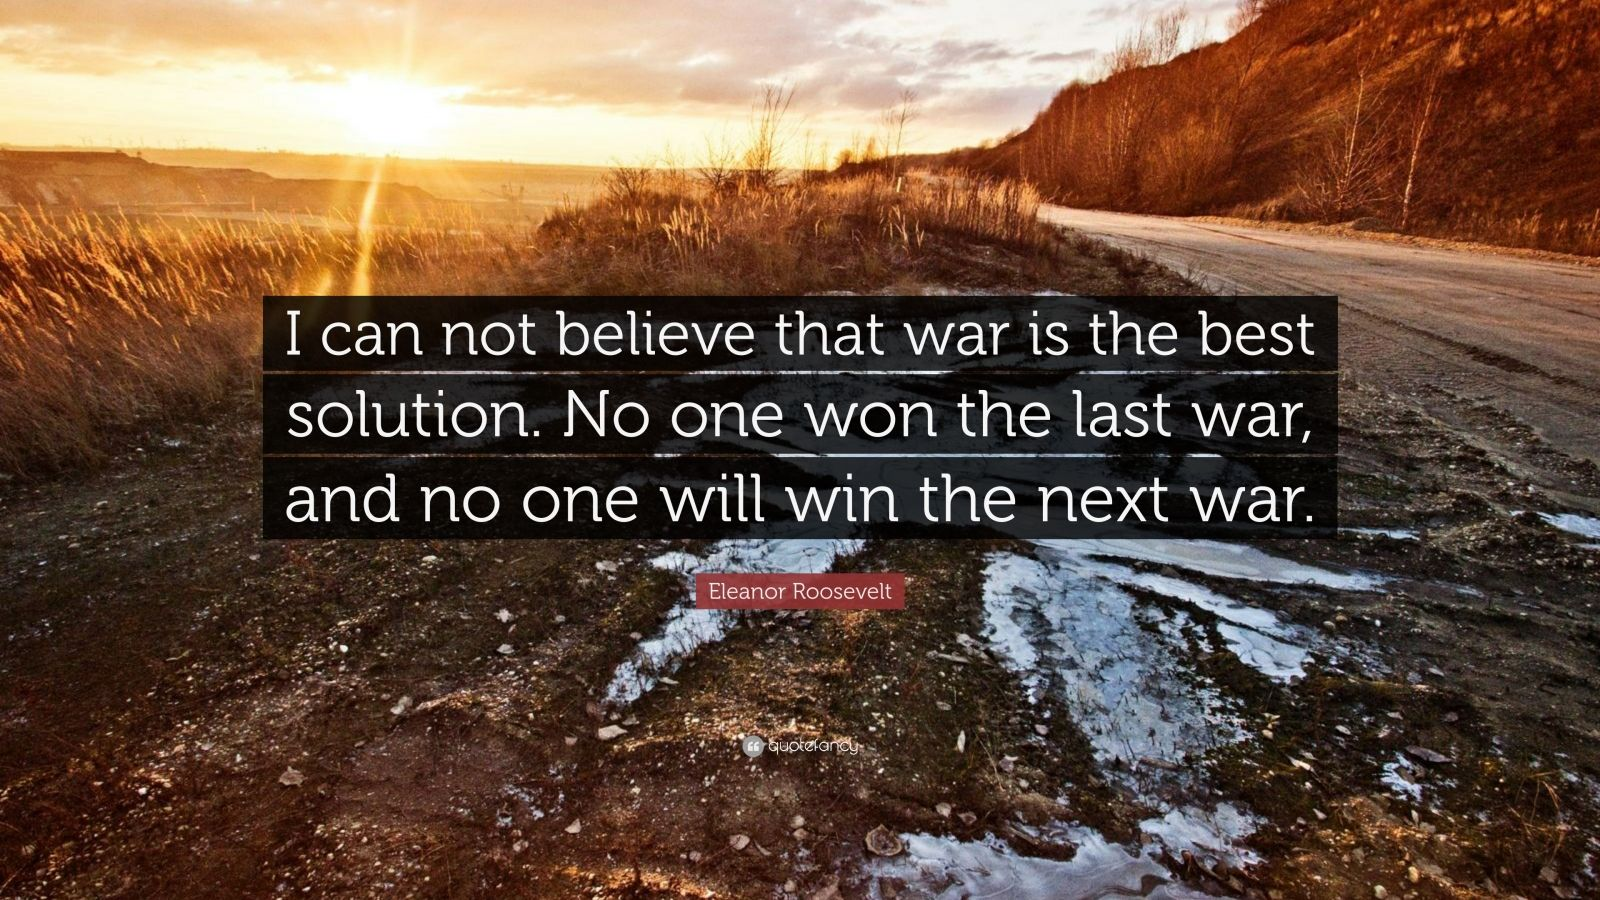 """Eleanor Roosevelt Quote: """"I can not believe that war is the best solution. No one won the last war, and no one will win the next war."""""""